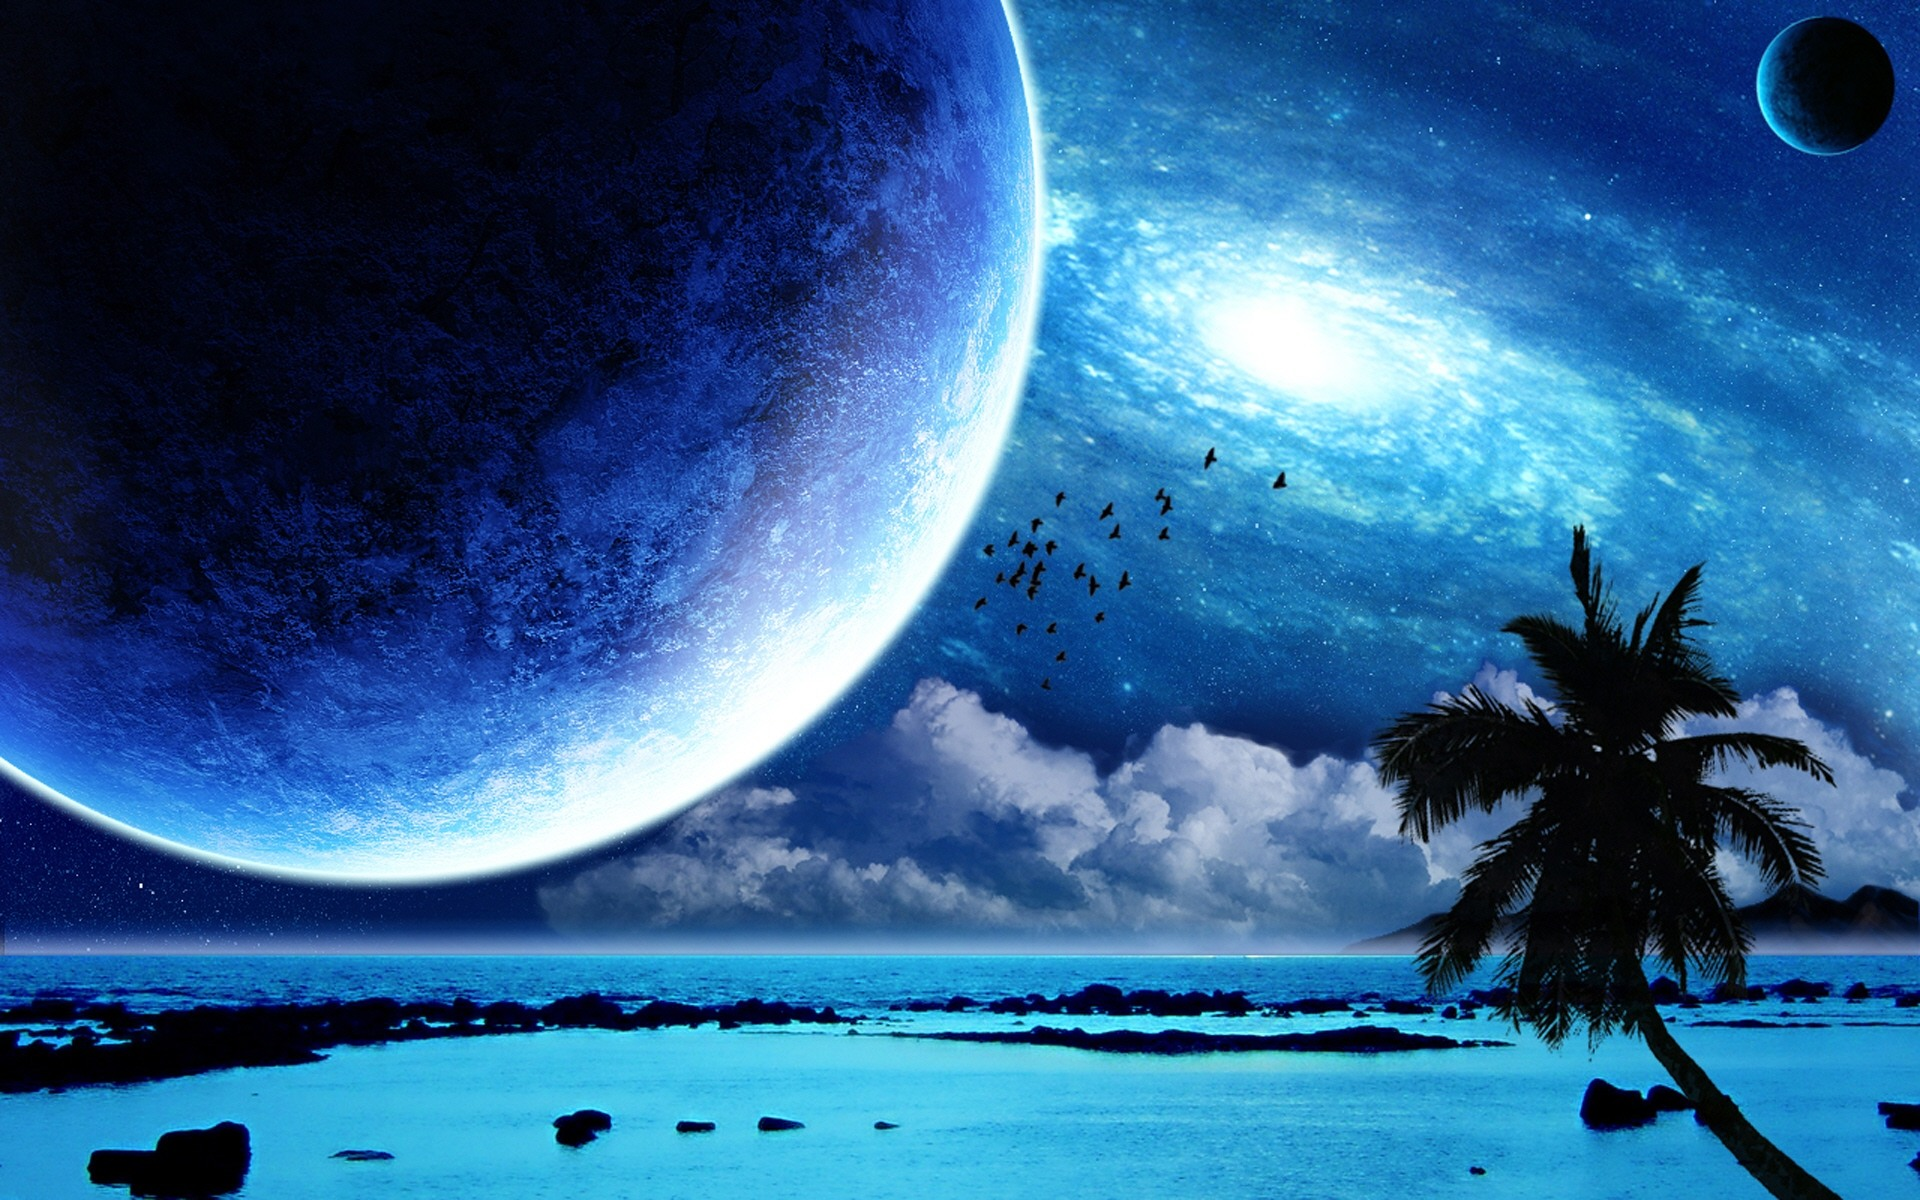 Interstellar Tropical Paradise desktop wallpaper 1920x1200